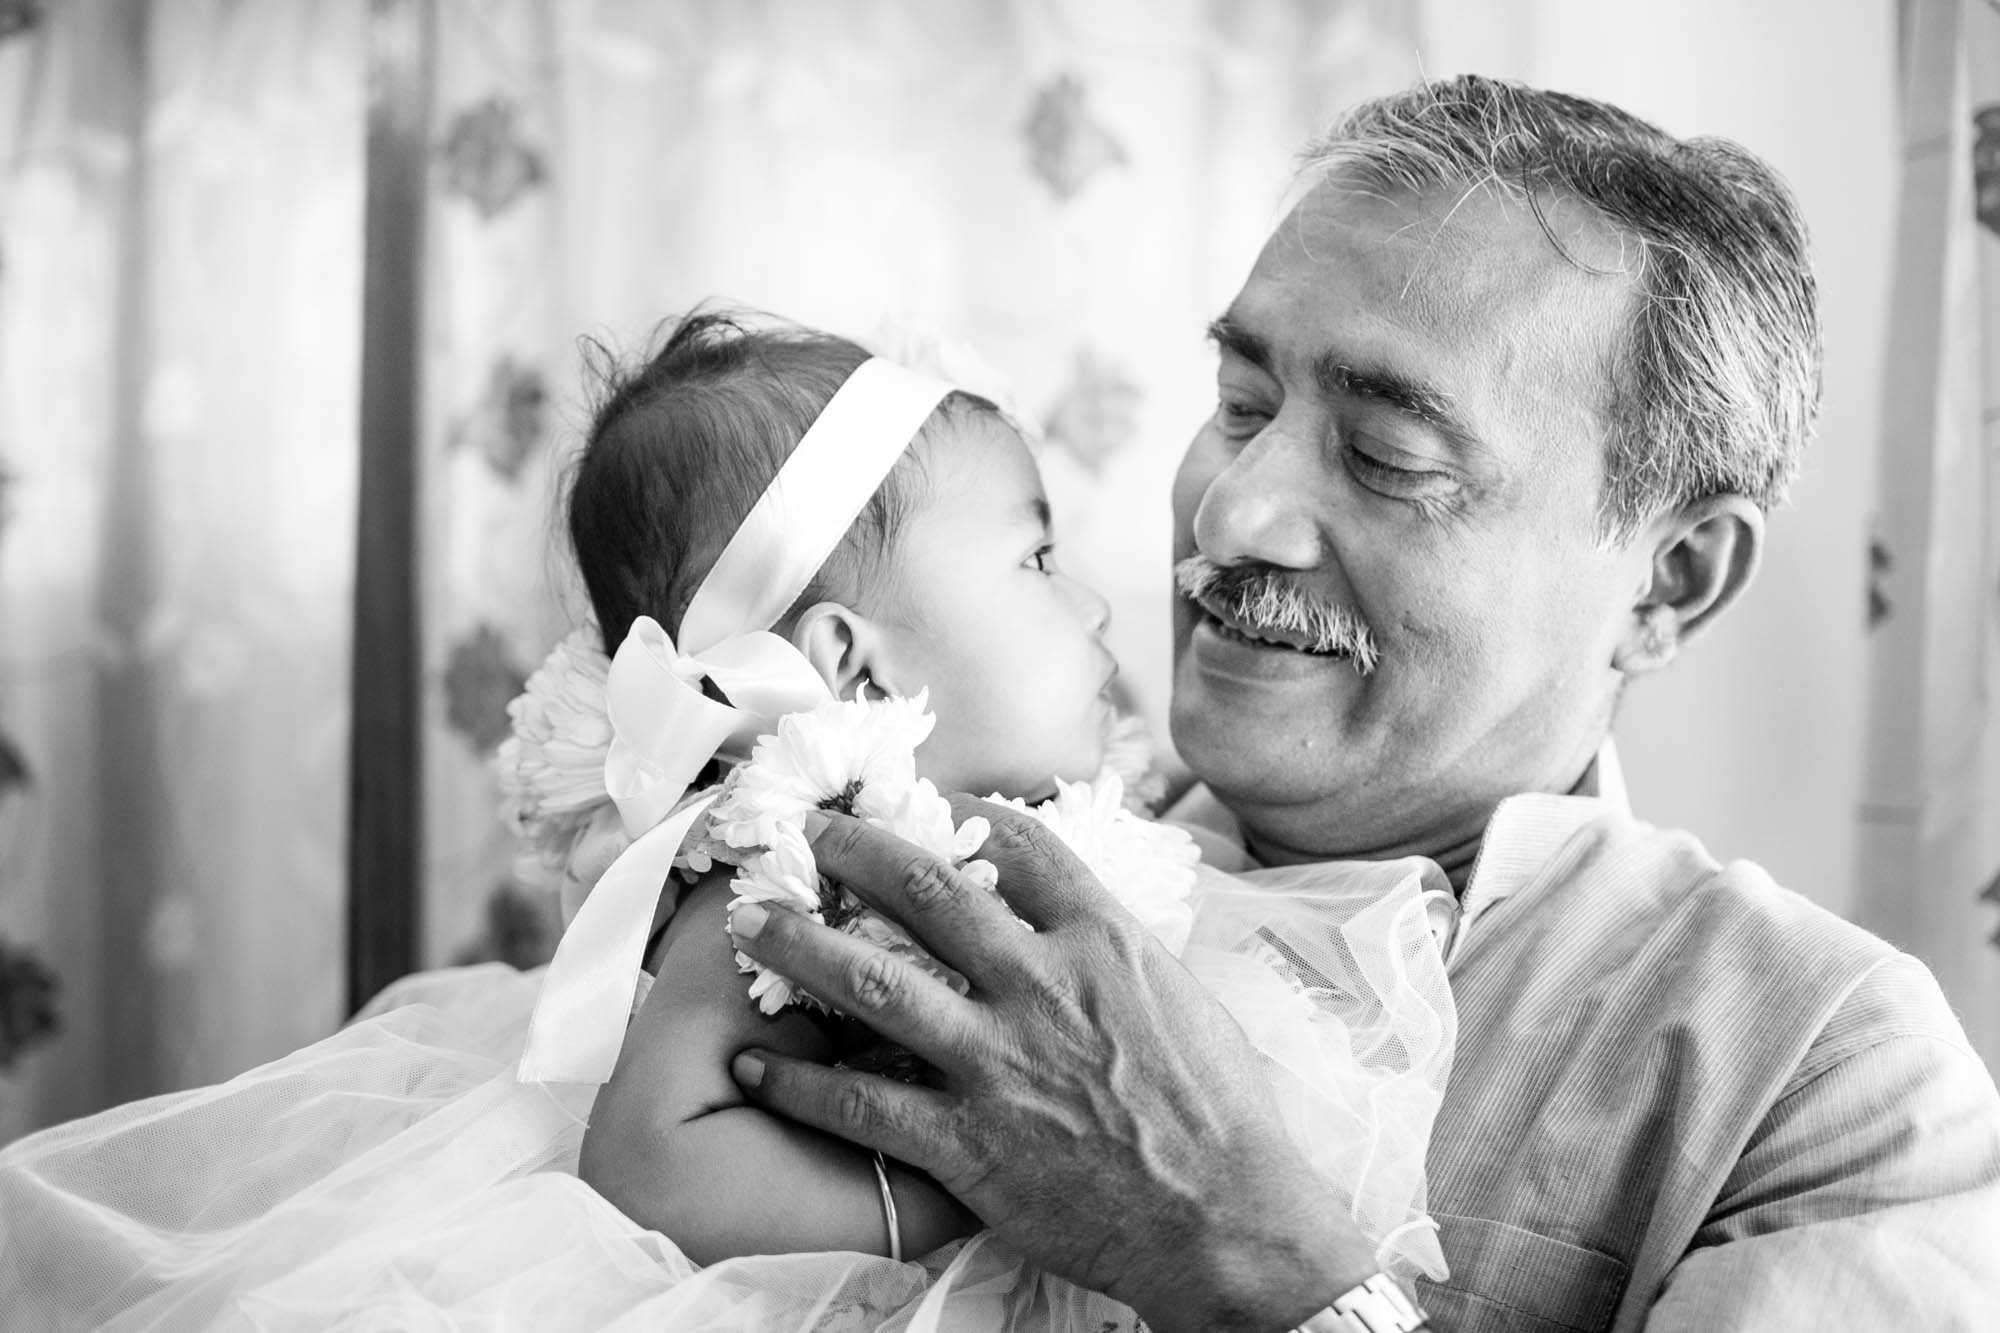 My father whom I can depend on and can took advice in any situation, my friend philosopher and guide...and my daughter is my life...I took this picture in middle of a party where my daughter was fussy and my father took her away from crowd to calm down..she always feel safe in her grandpa's lap...and could not resist to frame the eternal bonding..